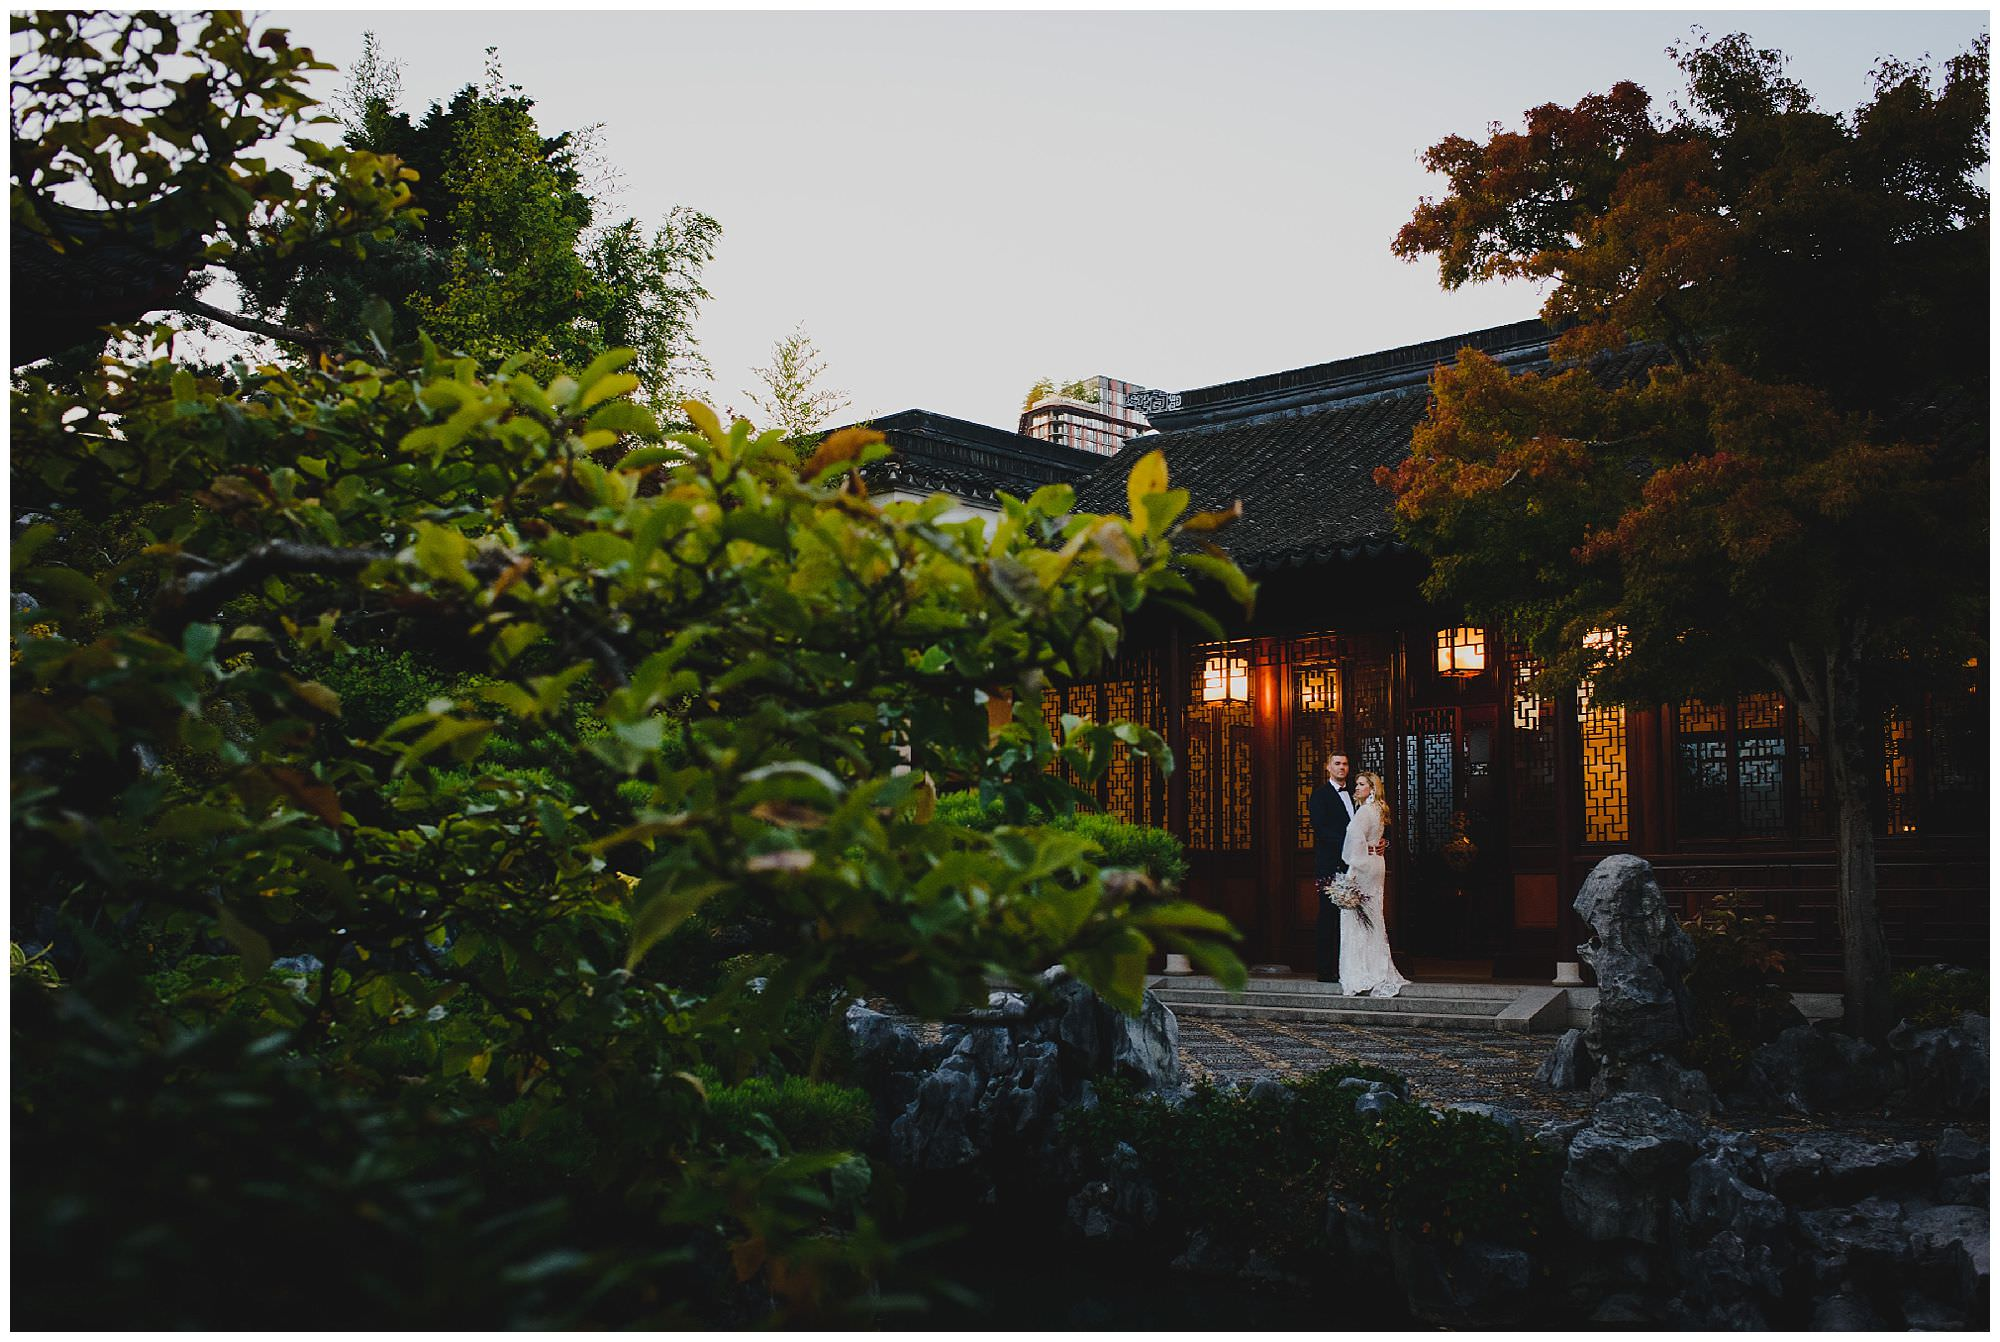 stylish bride and groom at sunset after their wedding ceremony at Dr. Sun Yat-Sen Classical Chinese Gardens, elopement, intimate wedding, candid wedding photography, downtown Vancouver wedding photo